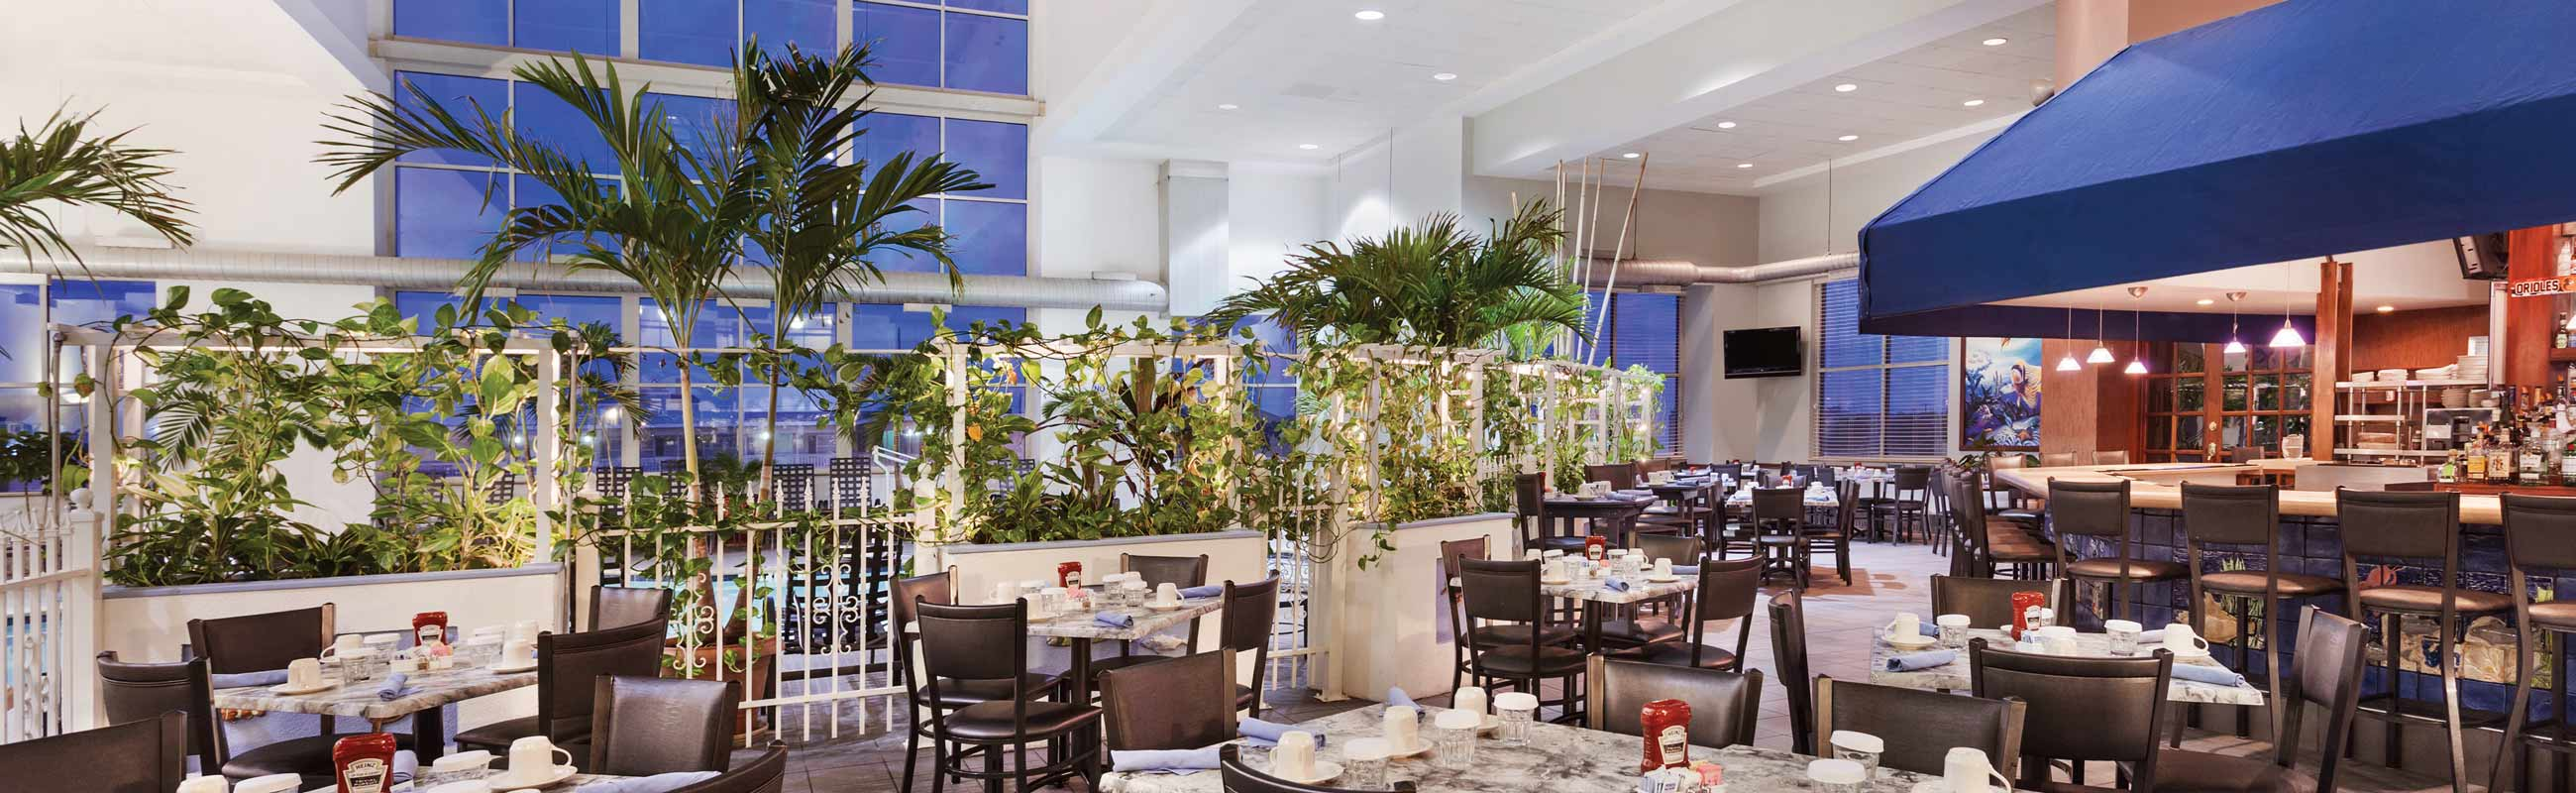 flavorful dining experiences in a 3-story atrium